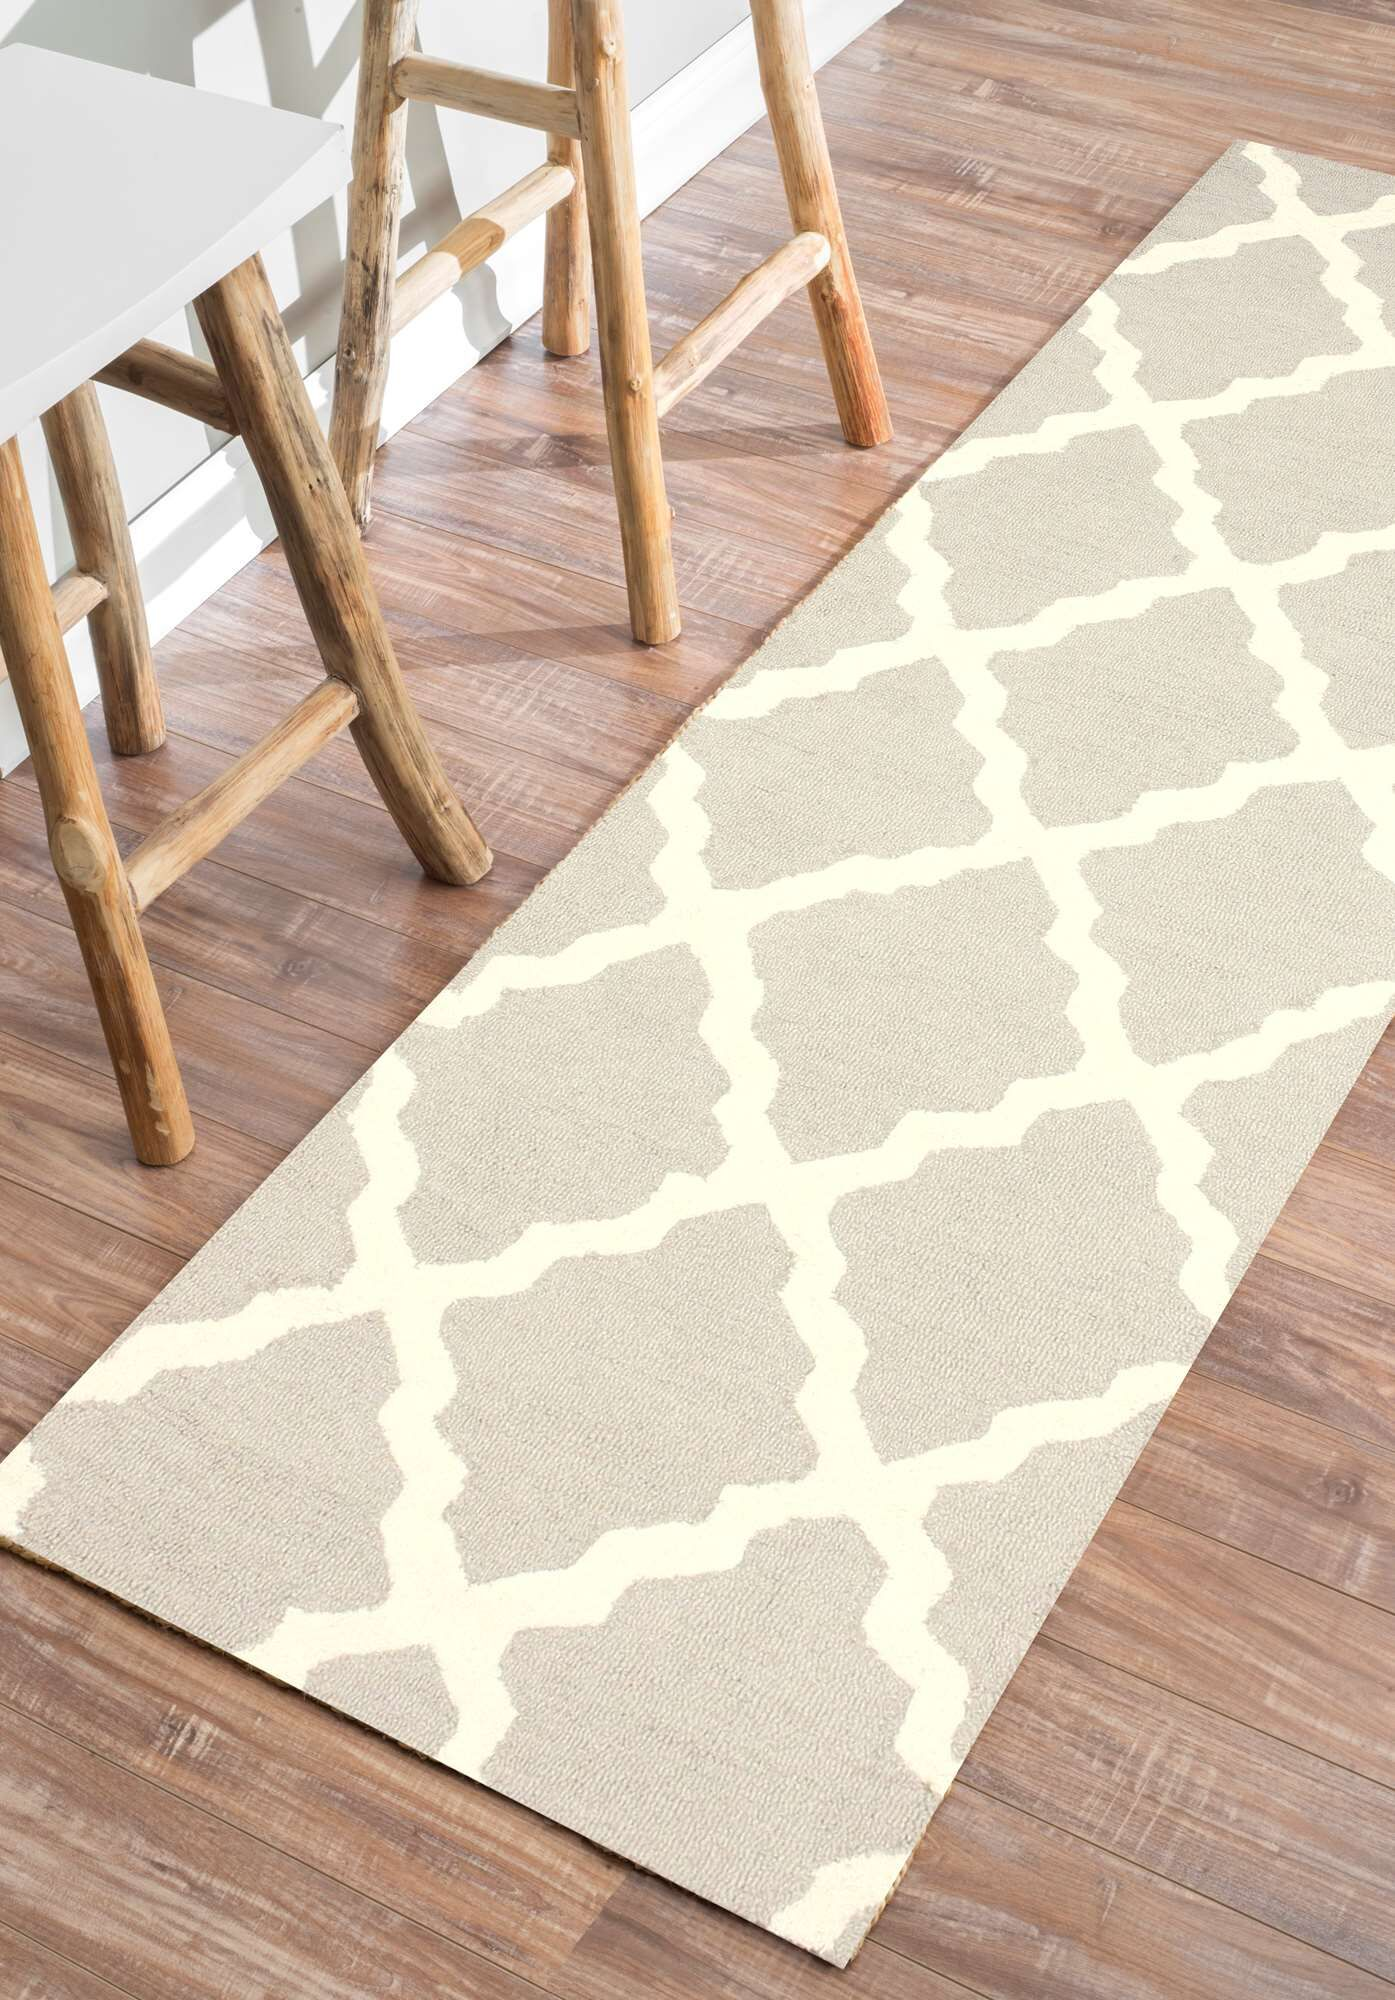 Terina Moroccan Trellis Kilim Tan Area Rug Rug Size: Rectangle 5' x 8'